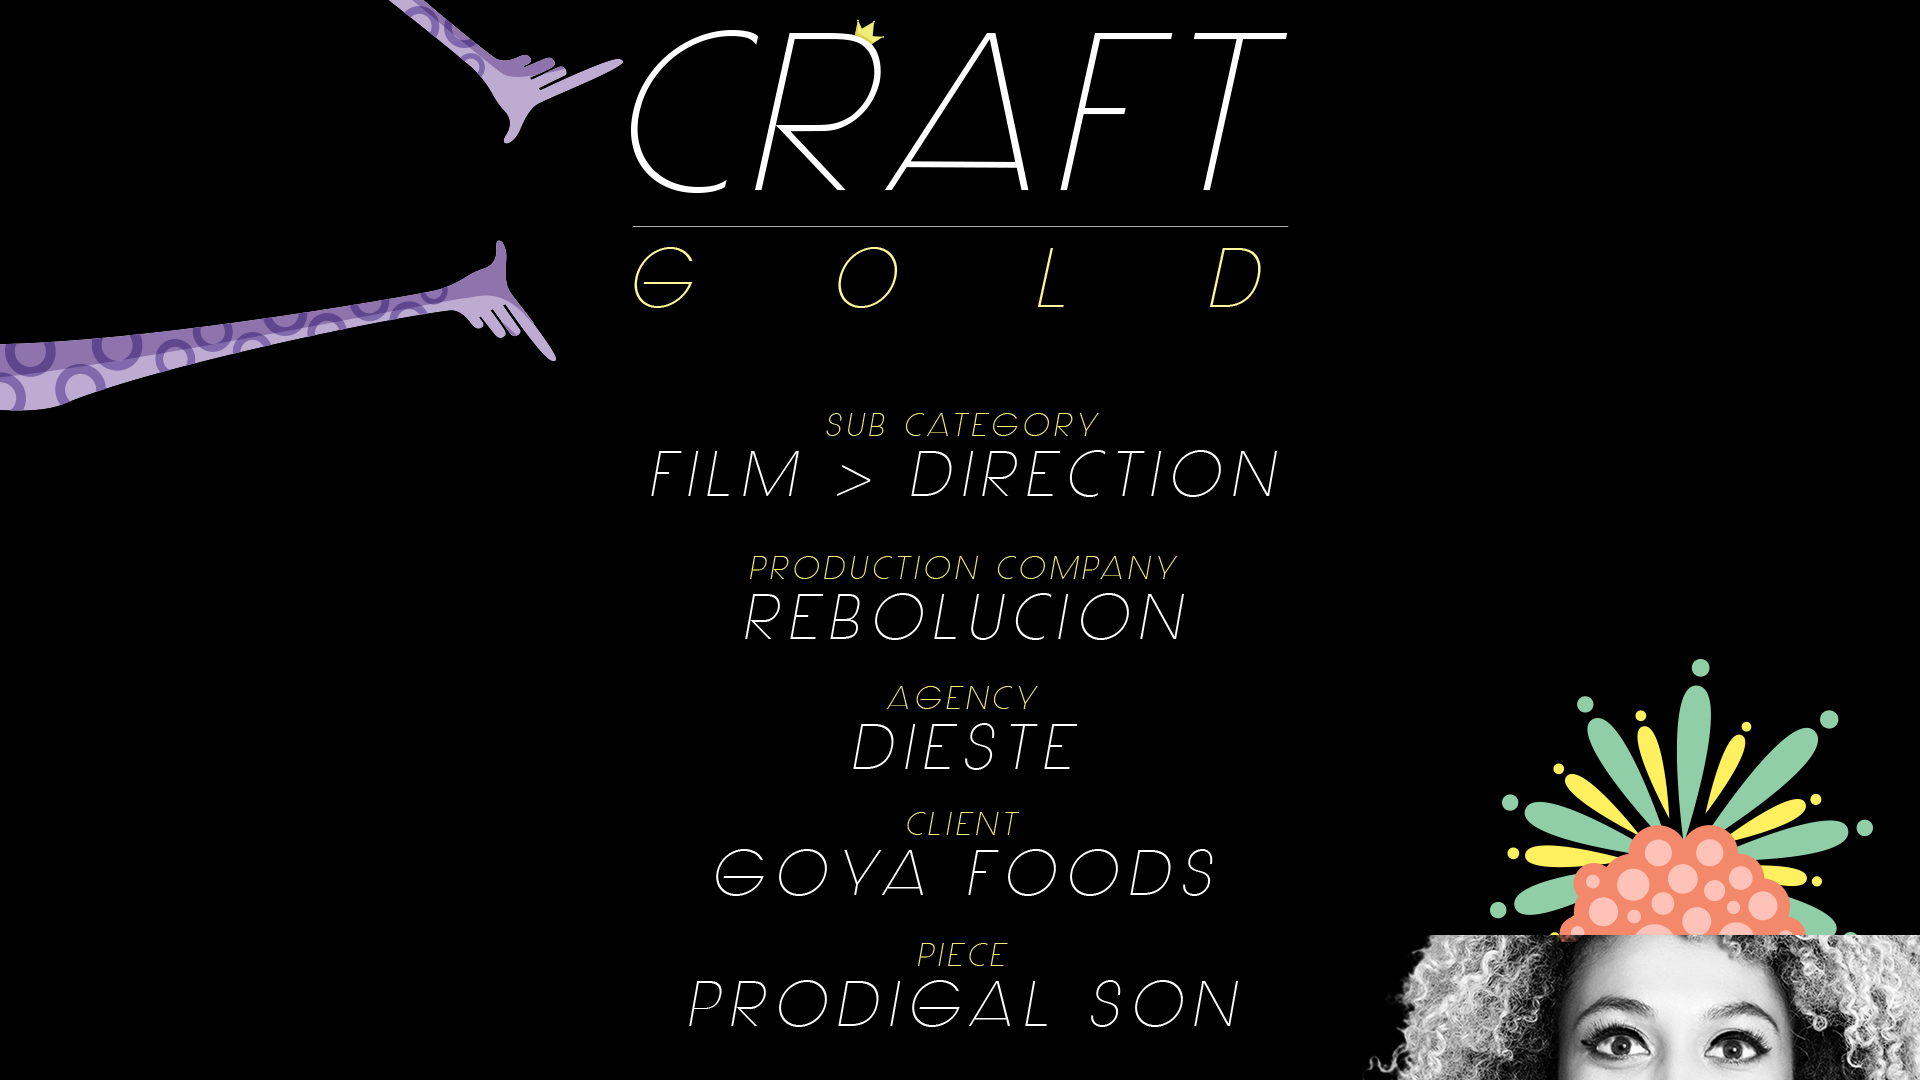 PLACAS GOLD-craft-FILM - DIRECTION.png